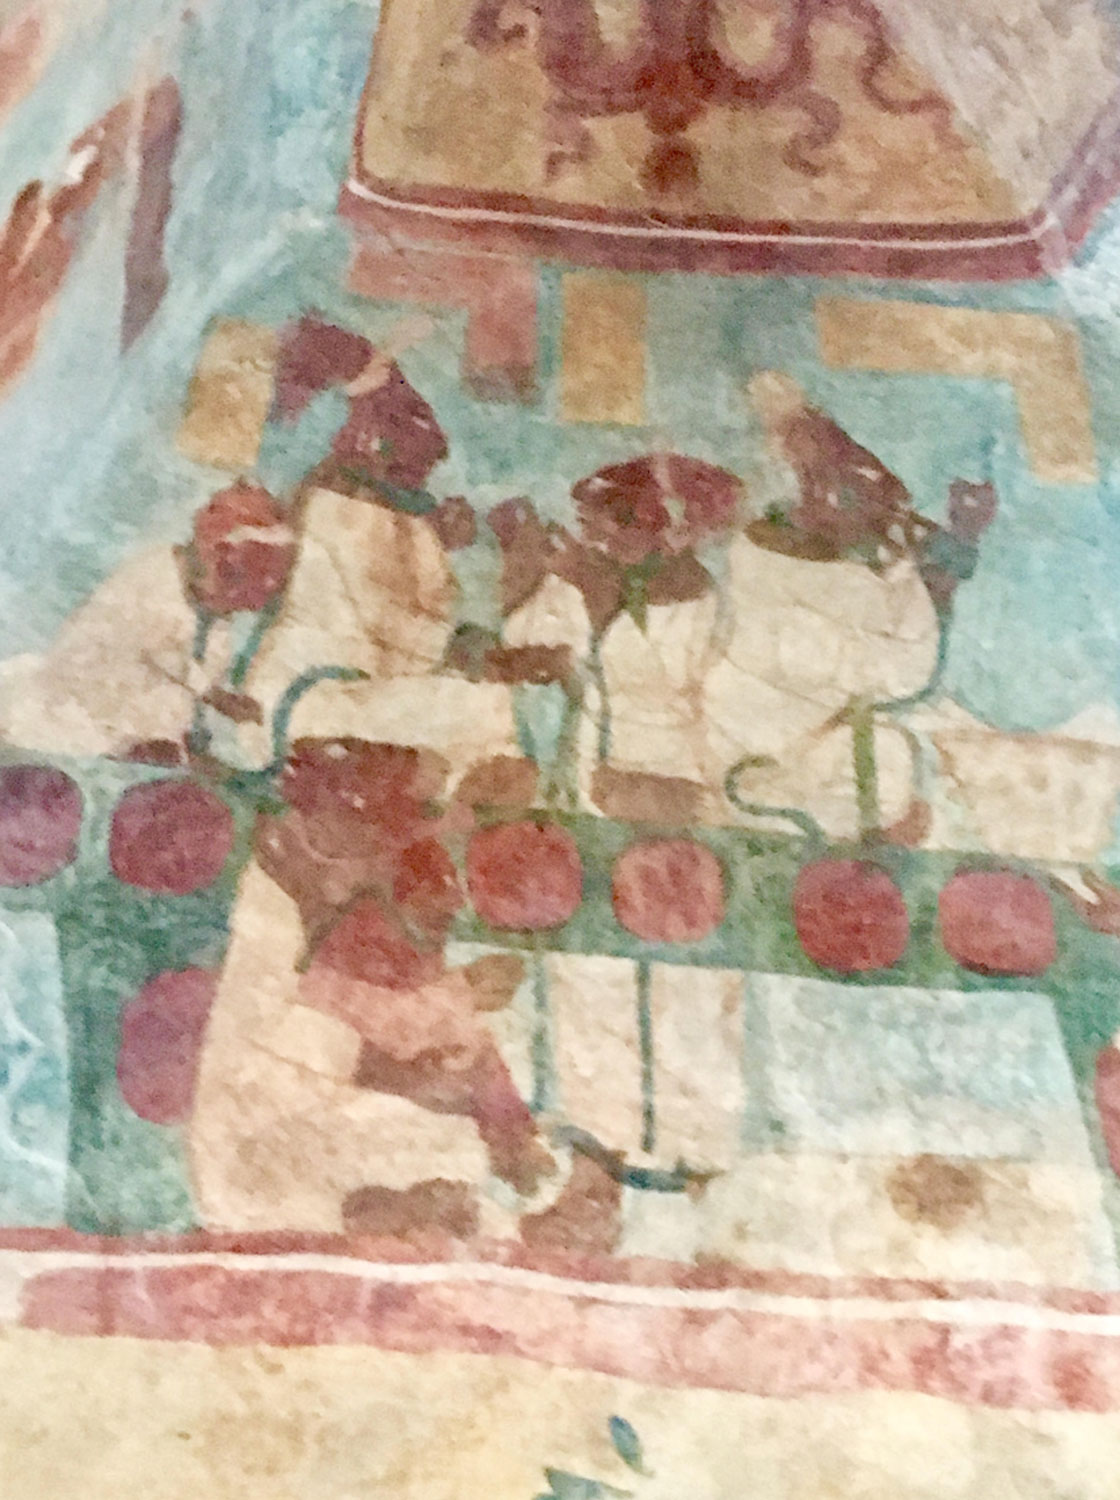 The noblewomen (king's wives?) cutting their tongues with stingray spines in a bloodletting ritual, to celebrate the war victory.